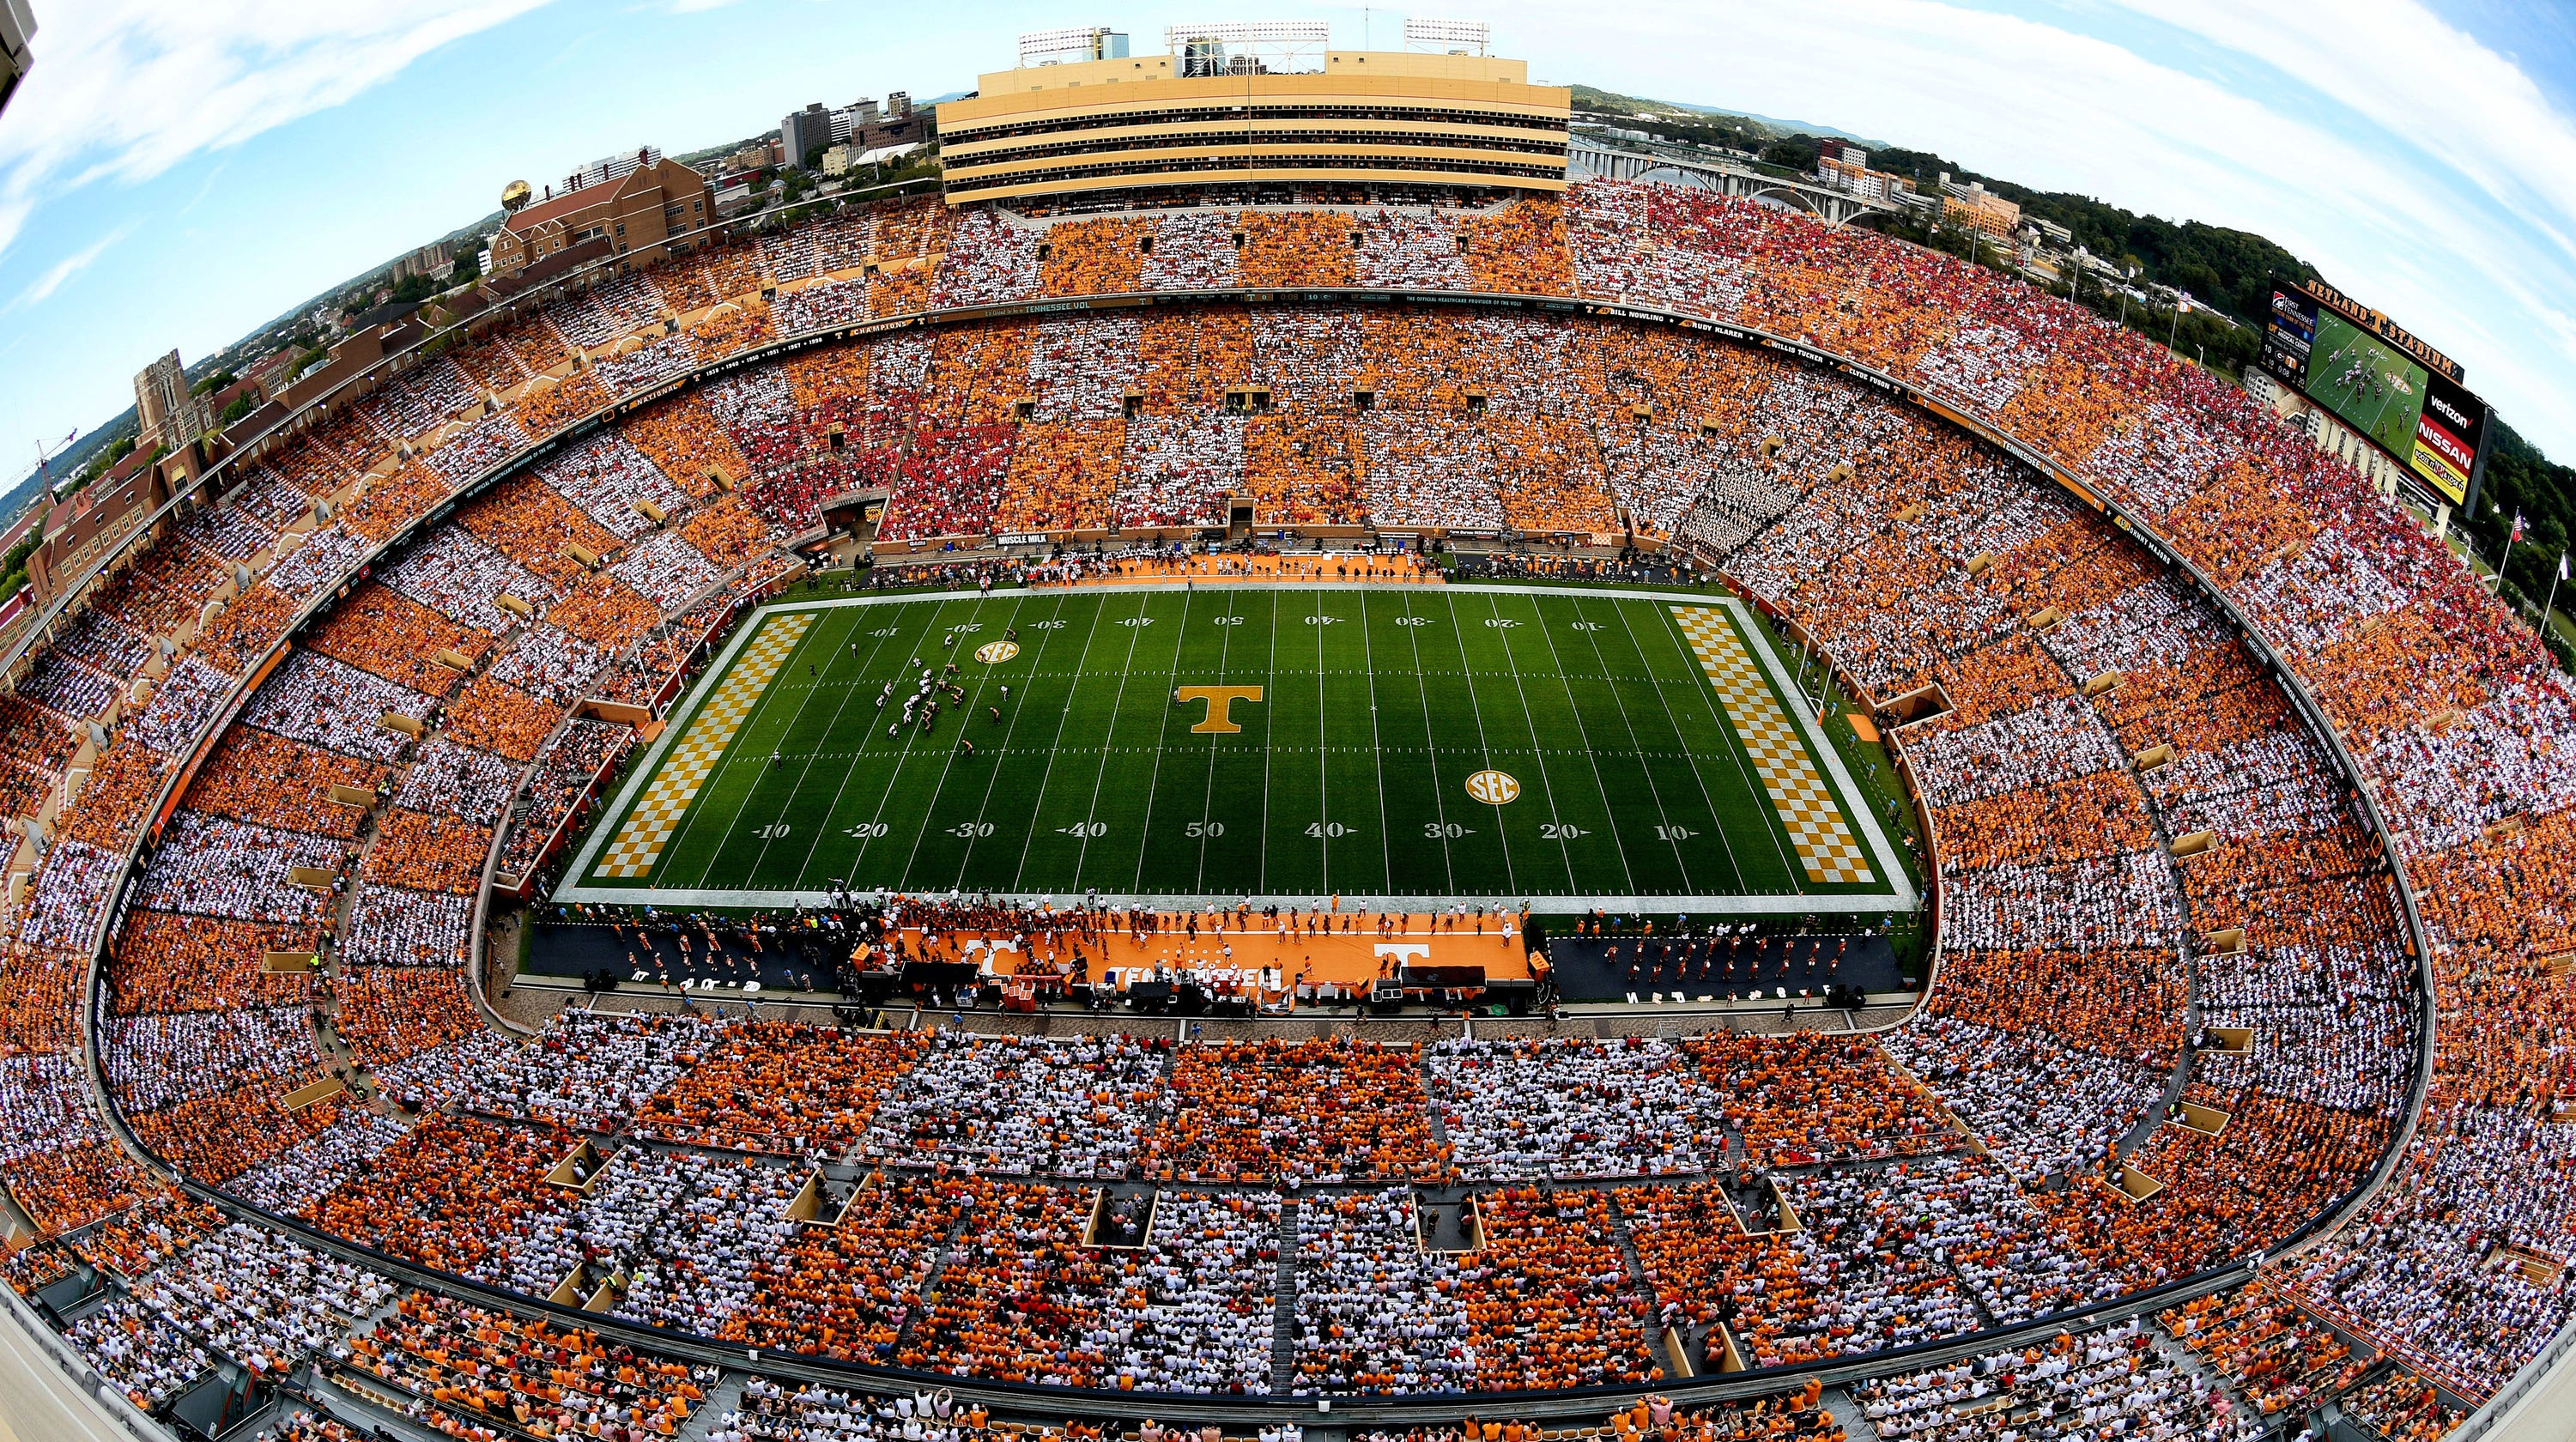 Fall 2020 Course Schedule Ut Tennessee football 2020 schedule: Georgia, Missouri flip spots